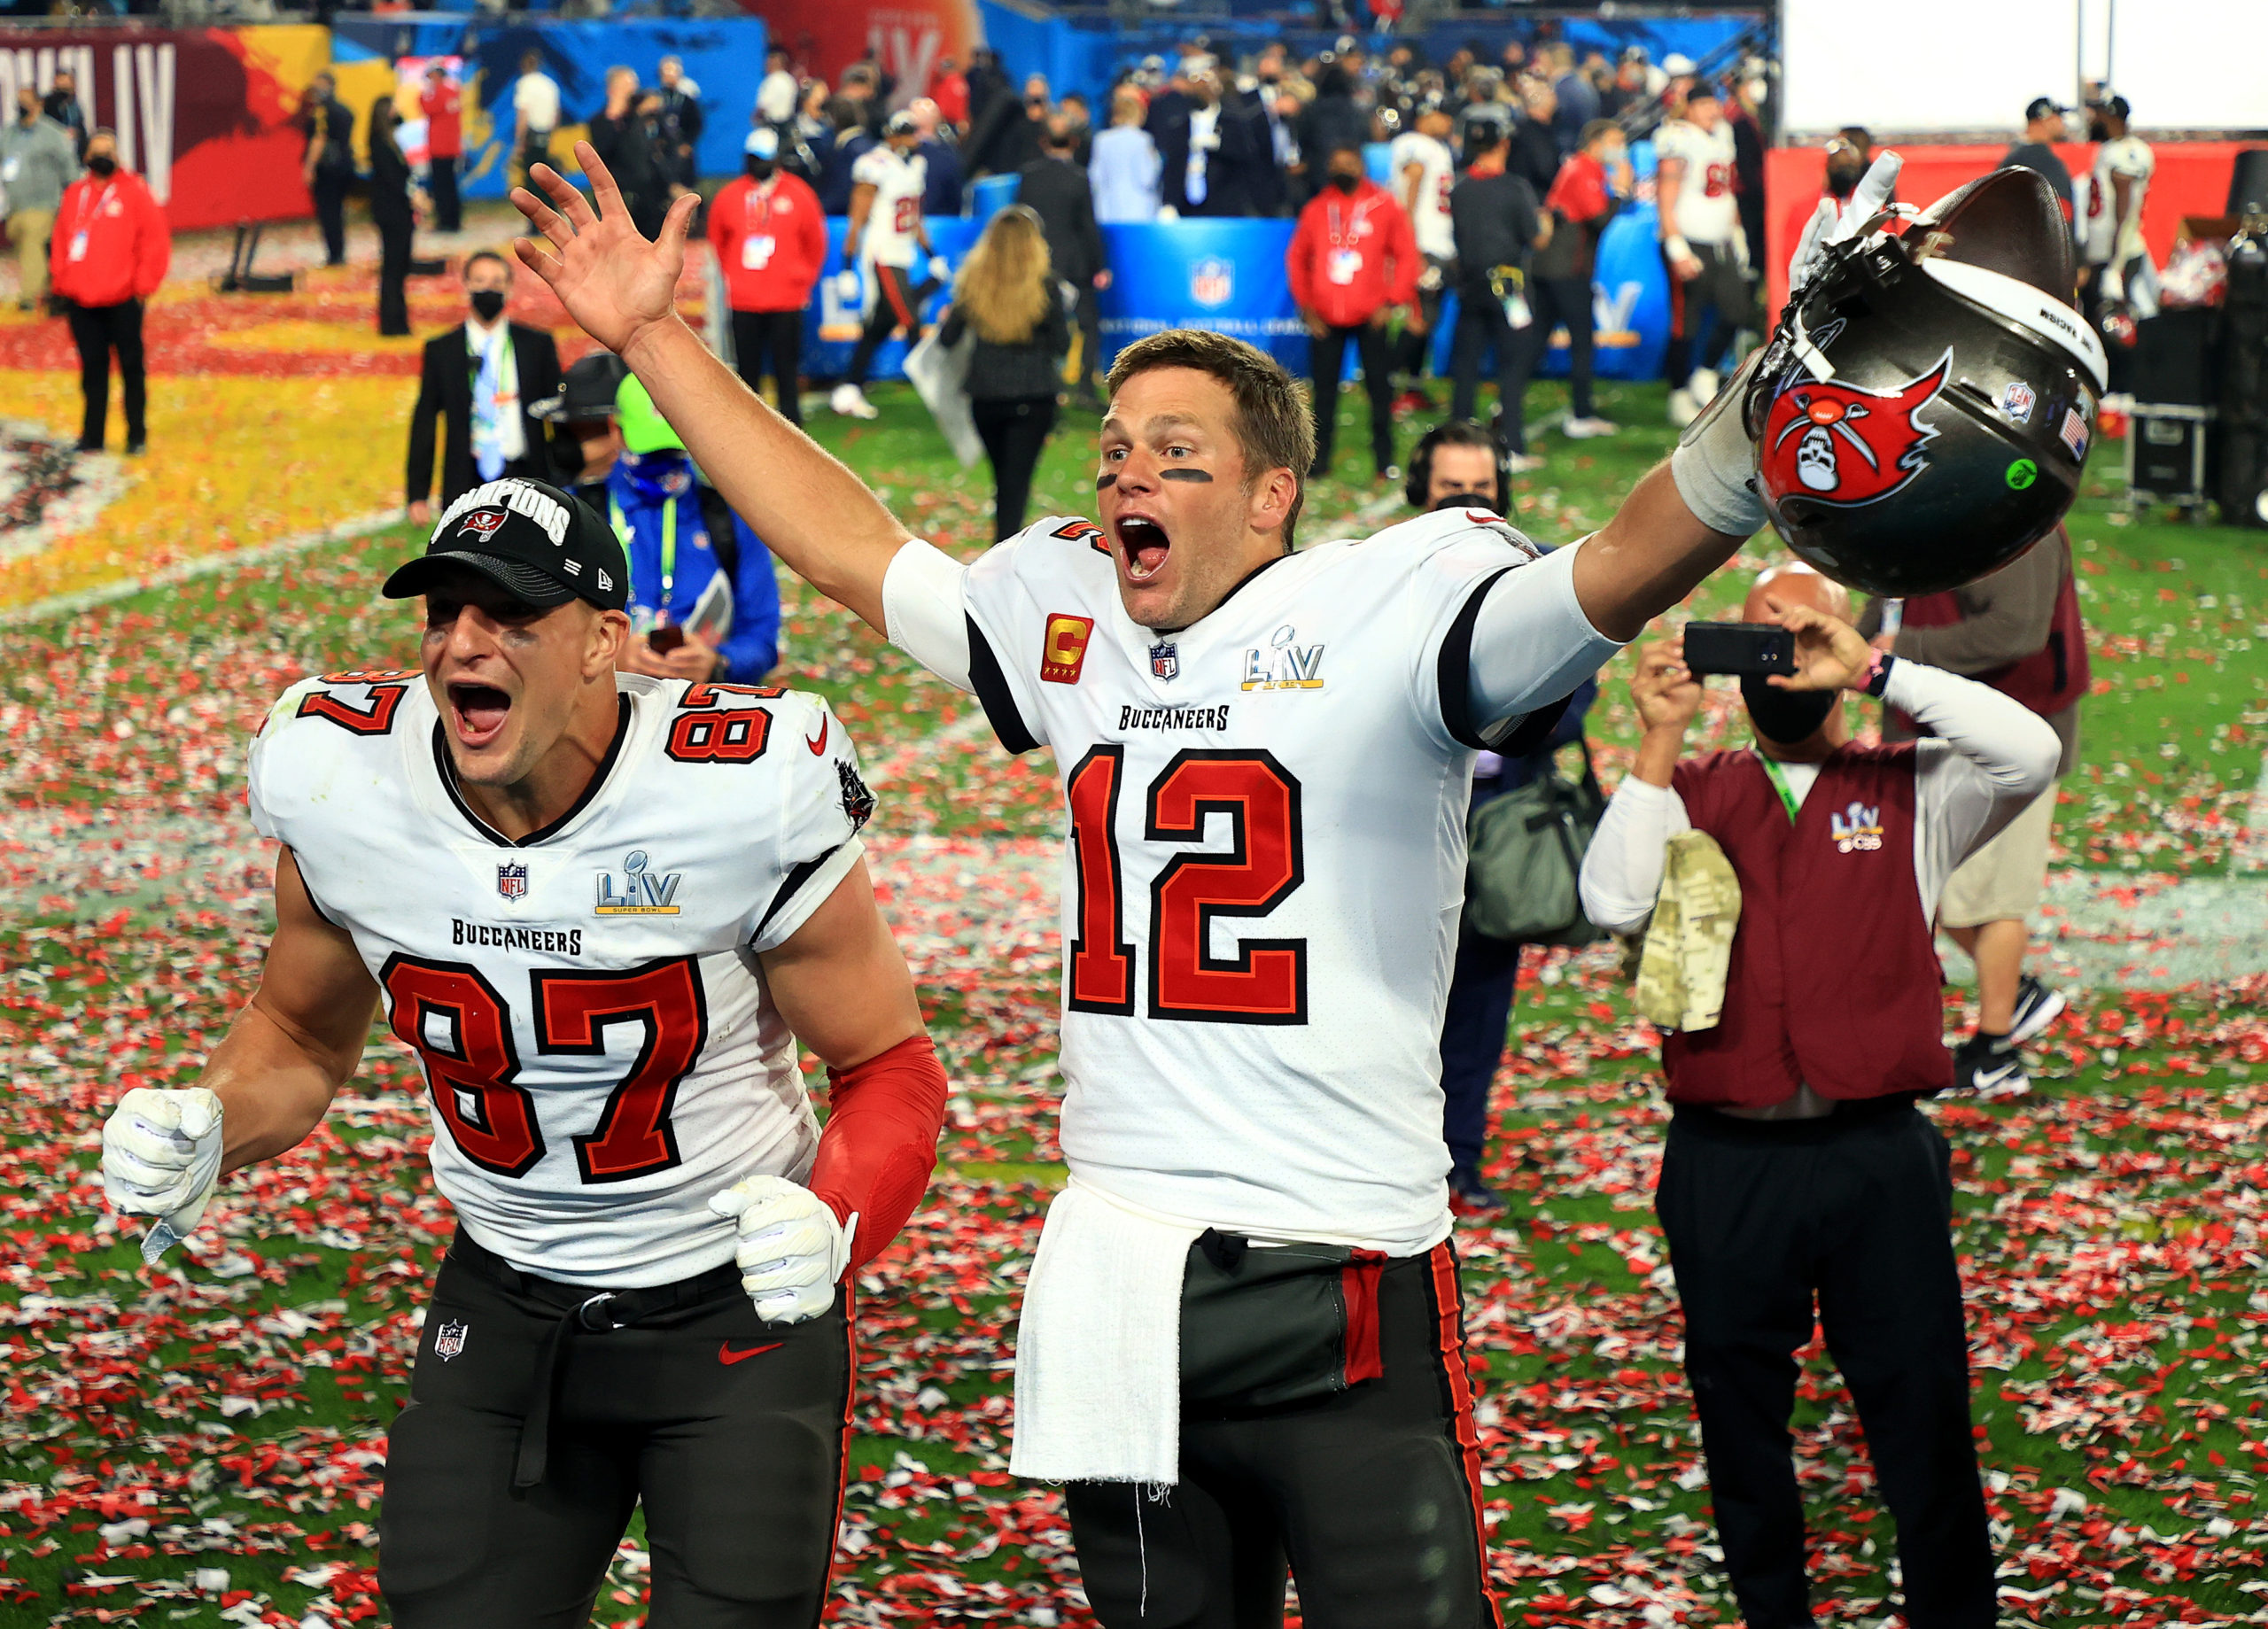 Odds of another super bowl for the Bucs repeat